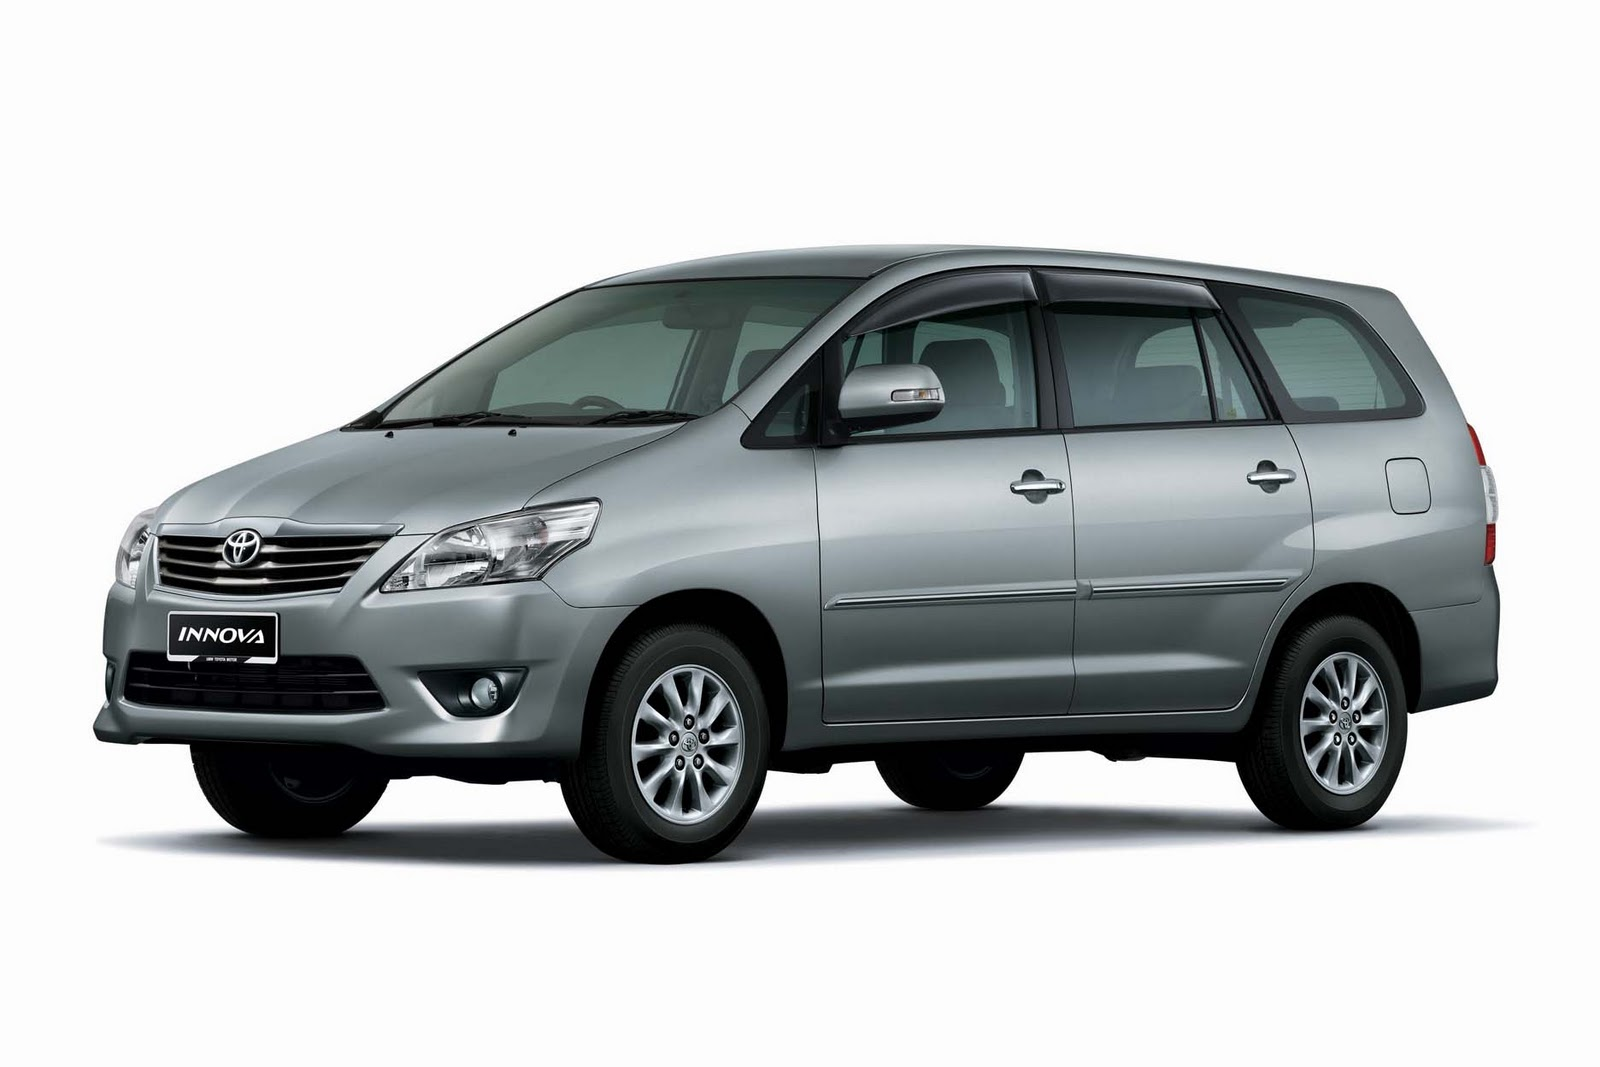 Sam S Auto Scoop Facelifted Innova Now In Showrooms